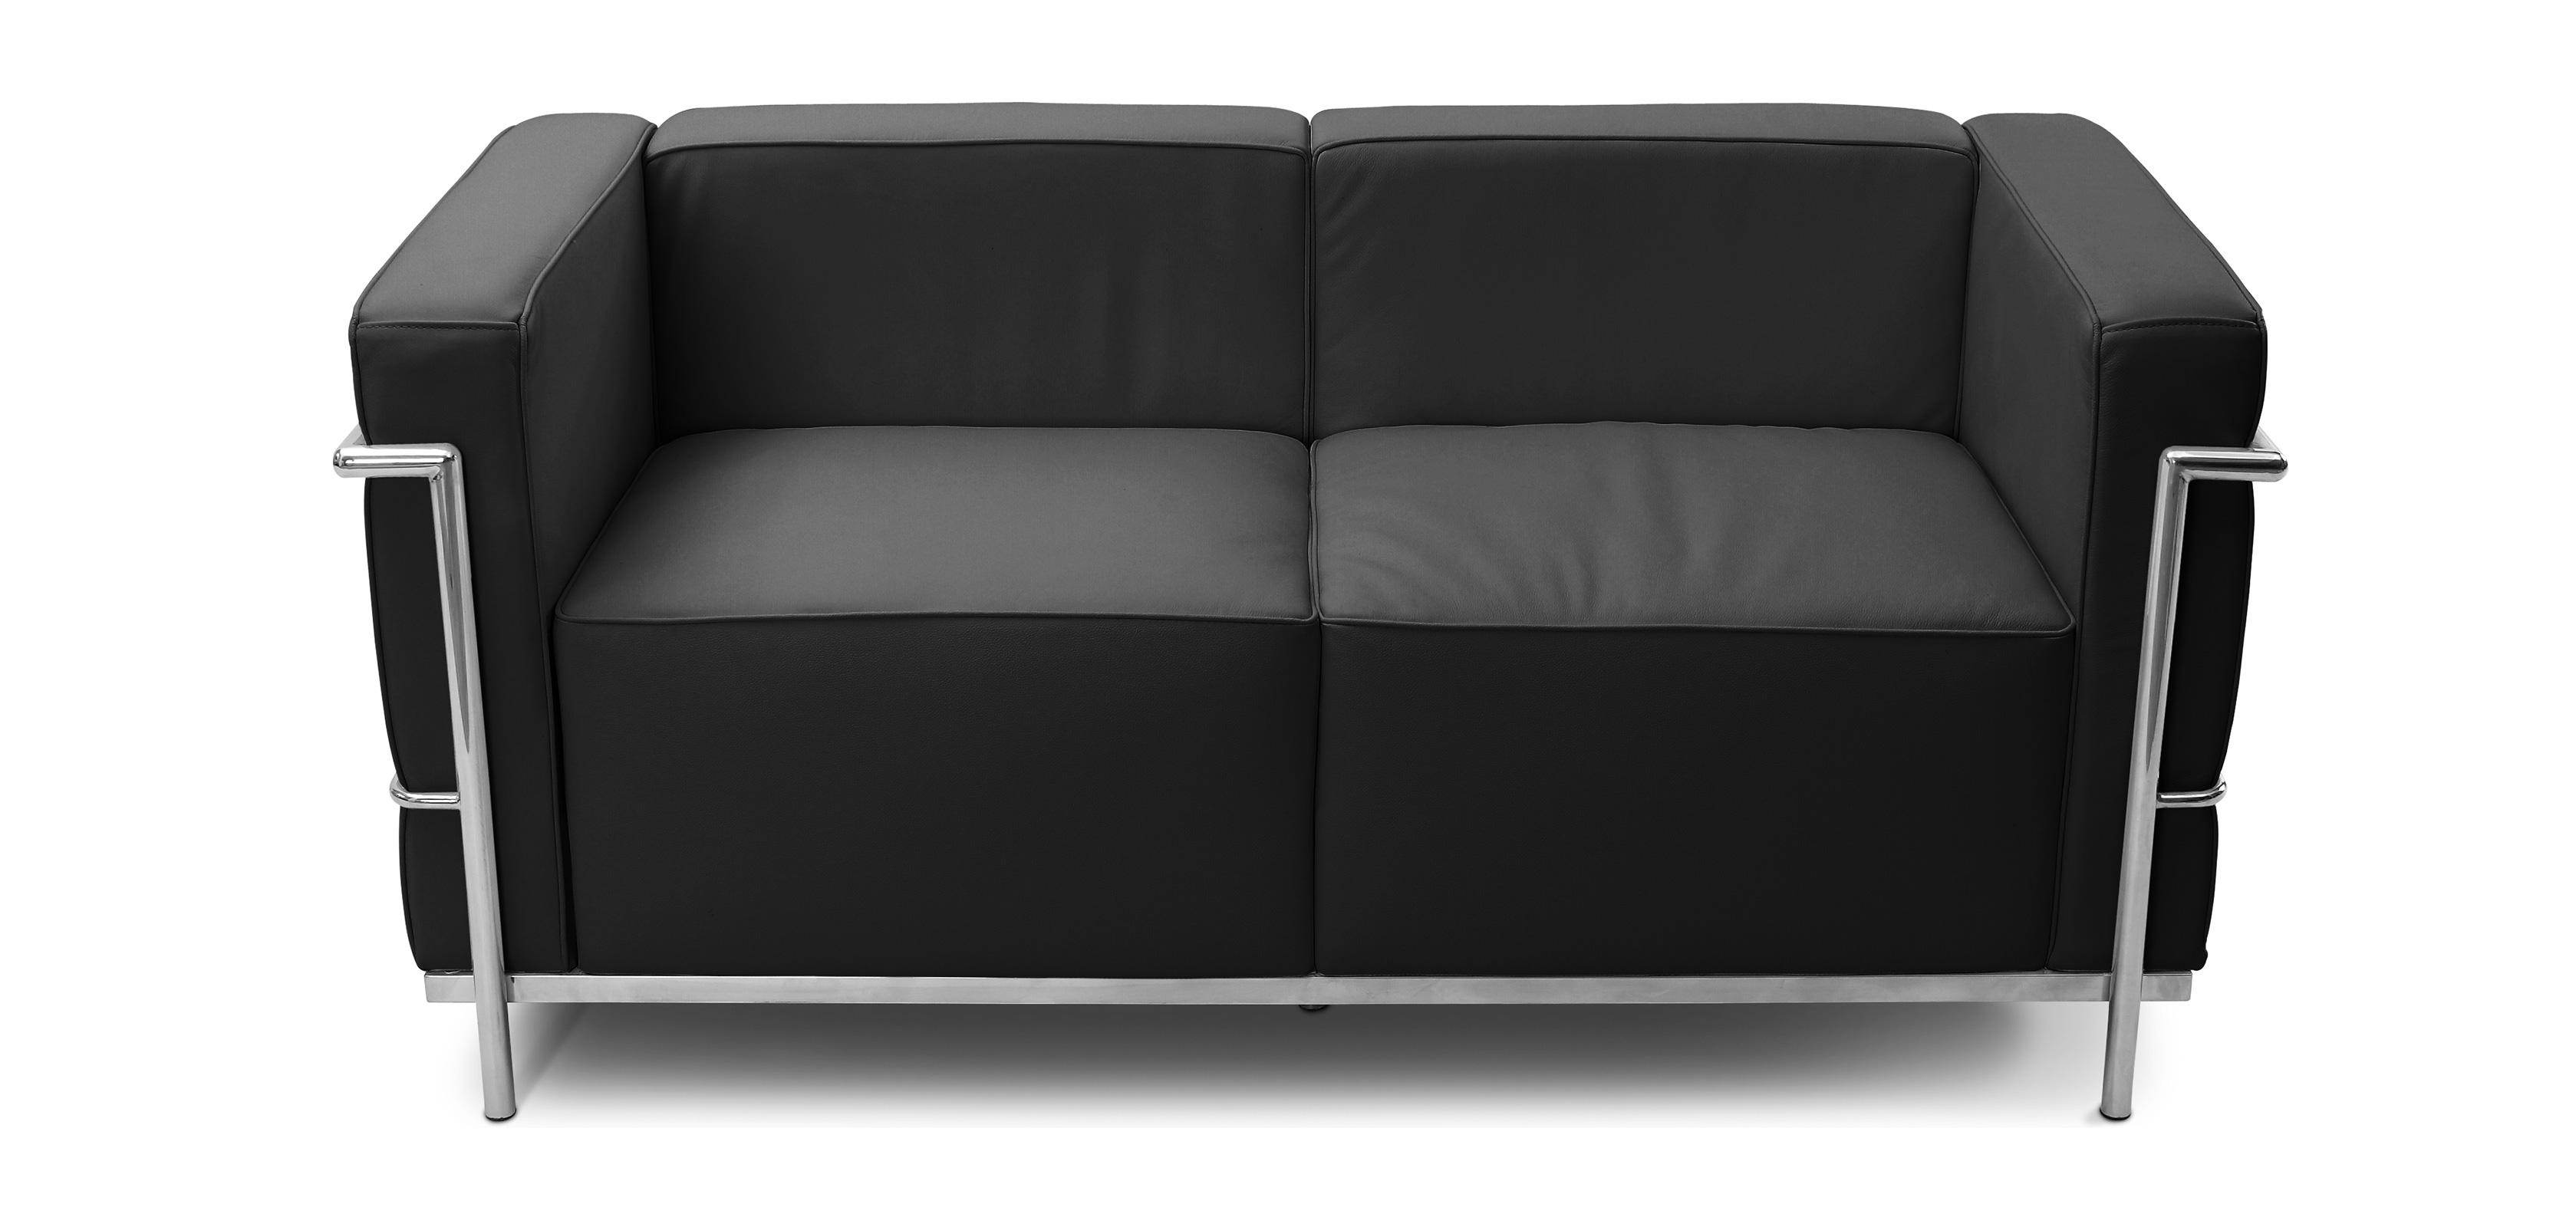 fauteuil corbusier. Black Bedroom Furniture Sets. Home Design Ideas